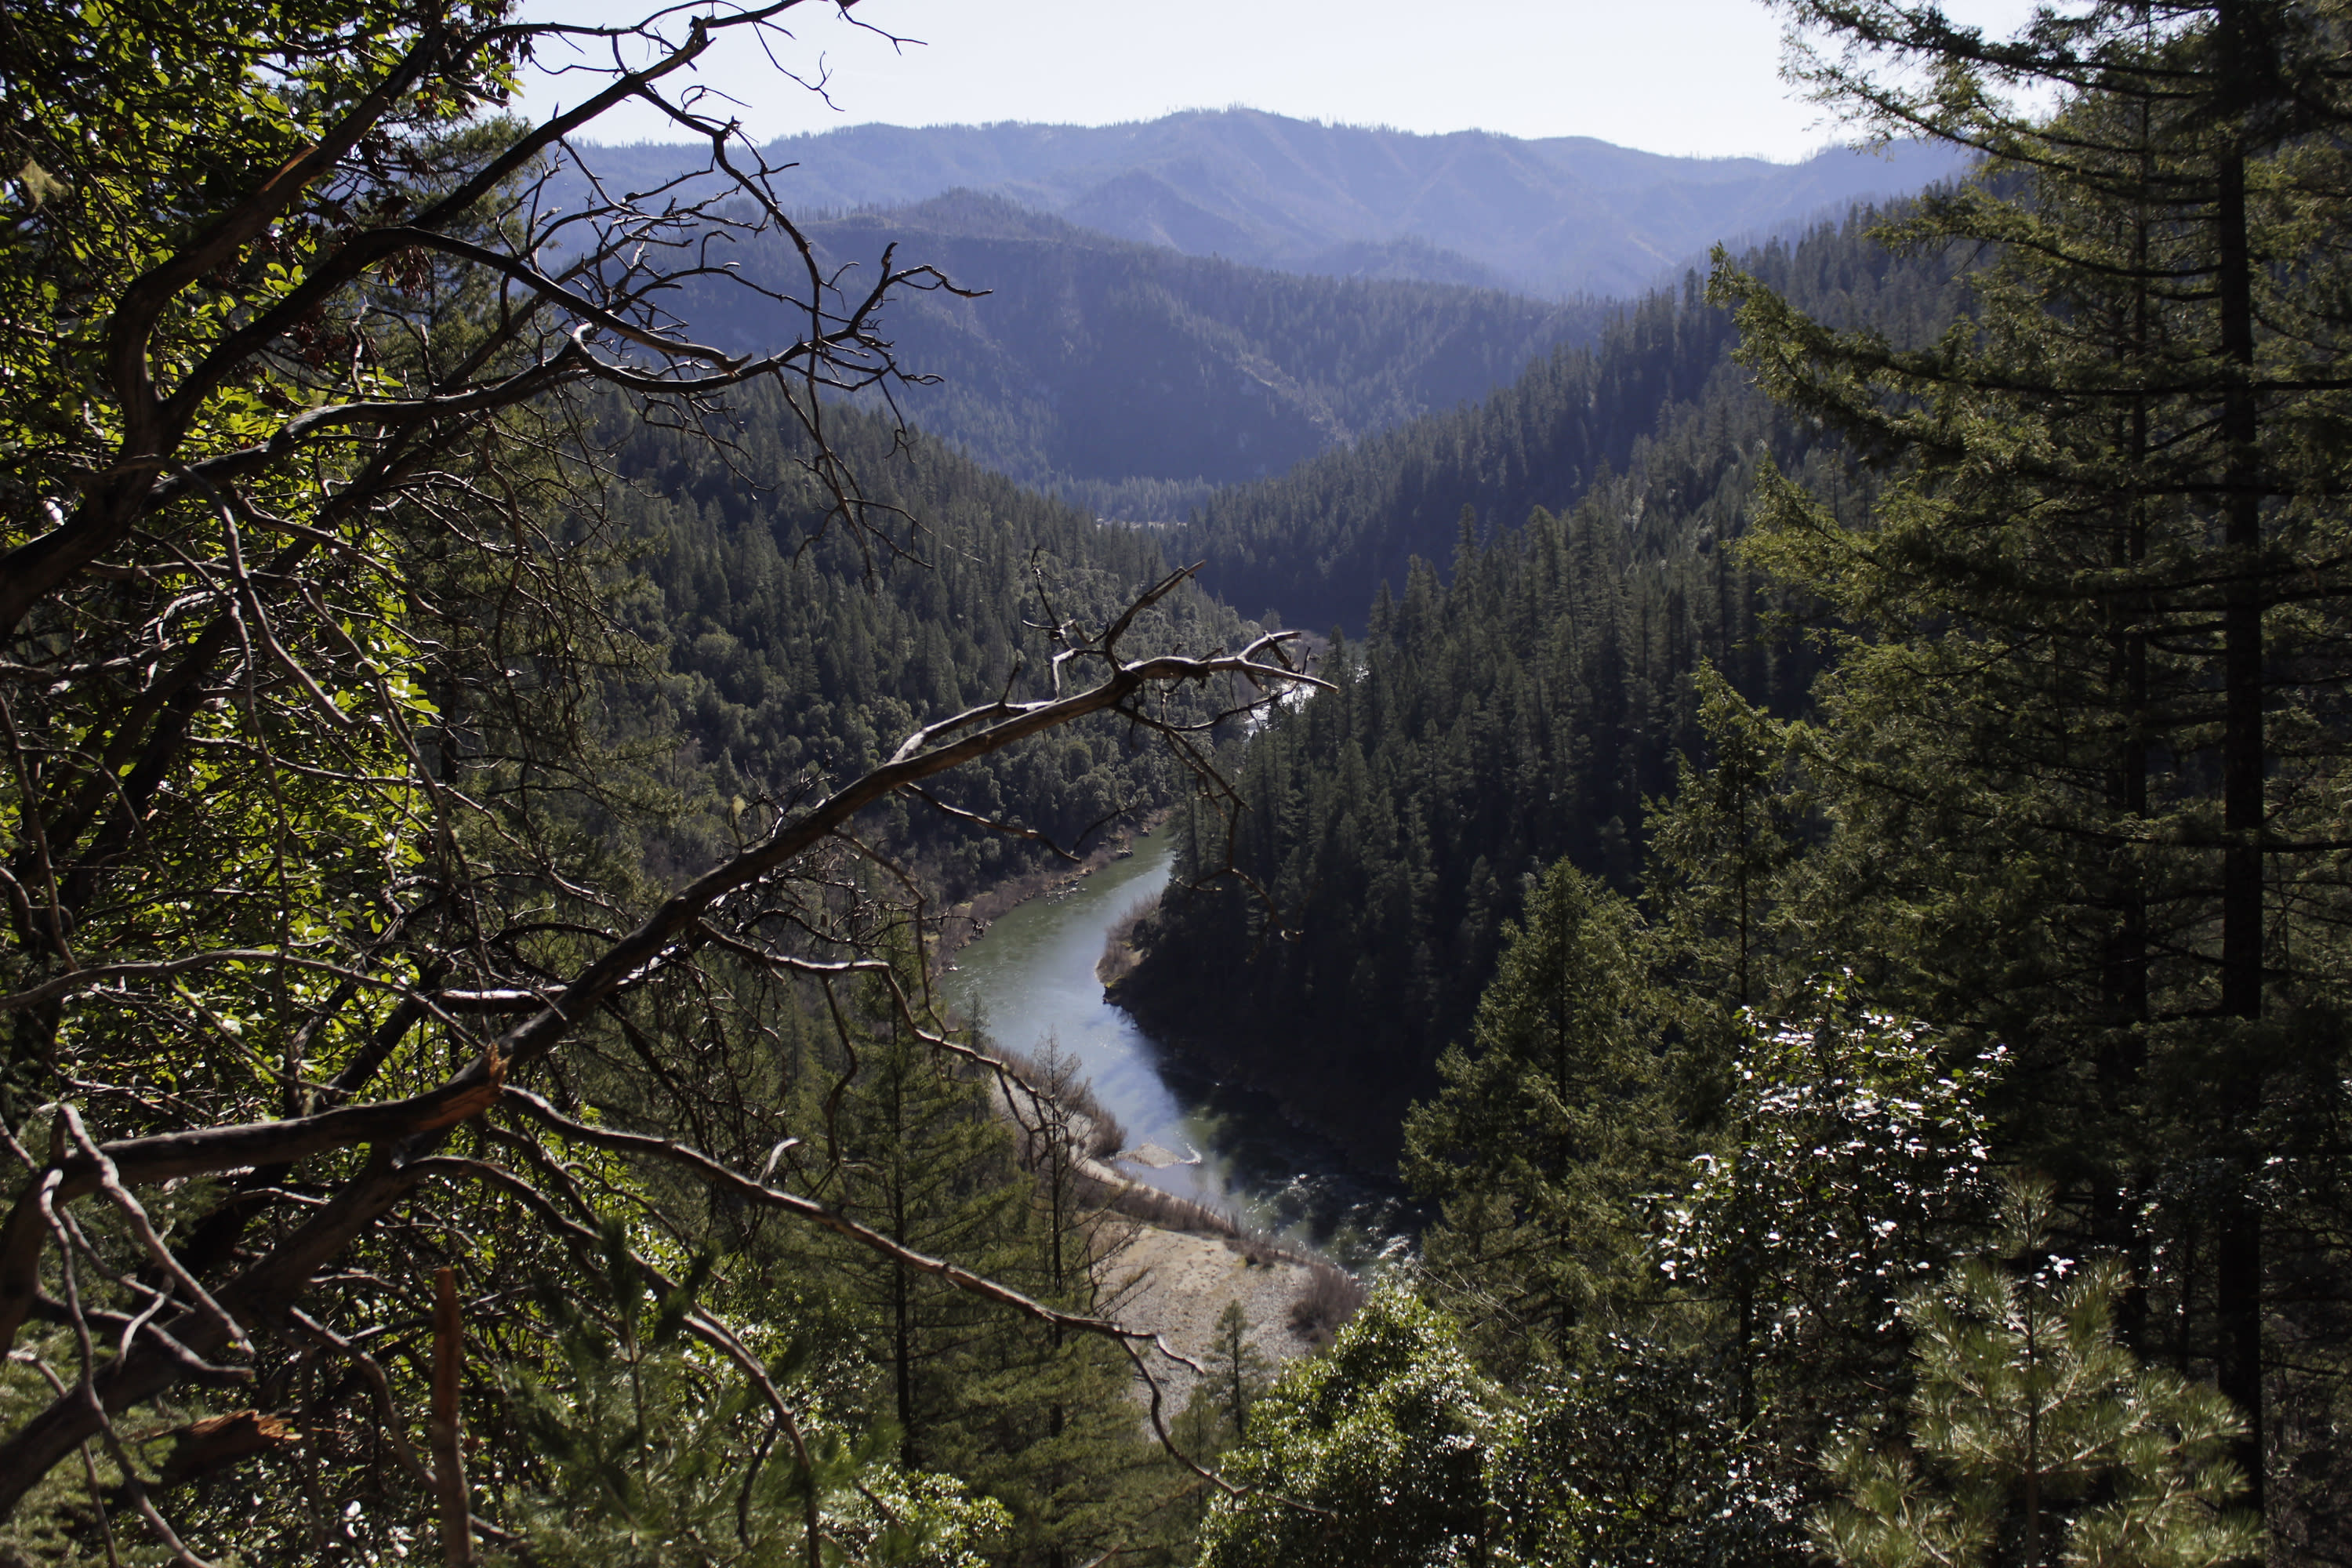 FILE - In this March 3, 2020, file photo, the Klamath River is seen flowing across northern California from atop Cade Mountain in the Klamath National Forest. Federal regulators on Thursday, July 16, 2020, threw a significant curveball at a coalition that has been planning for years to demolish four massive hydroelectric dams on a river along the Oregon-California border to save salmon. (AP Photo/Gillian Flaccus, File)